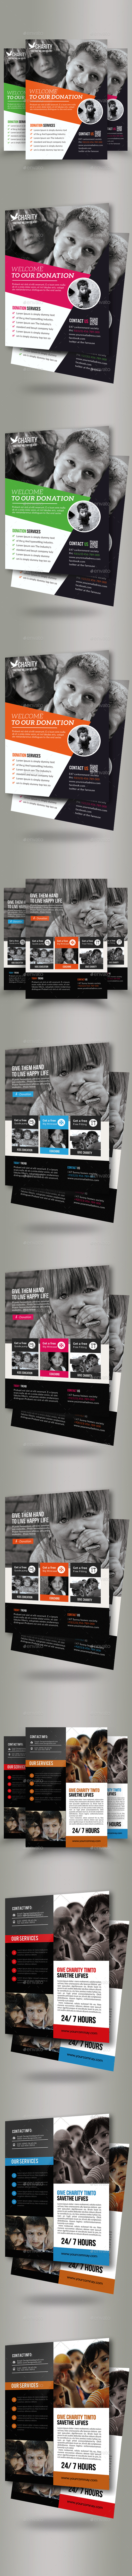 Charity & Donation Flyer Bundle - Corporate Flyers